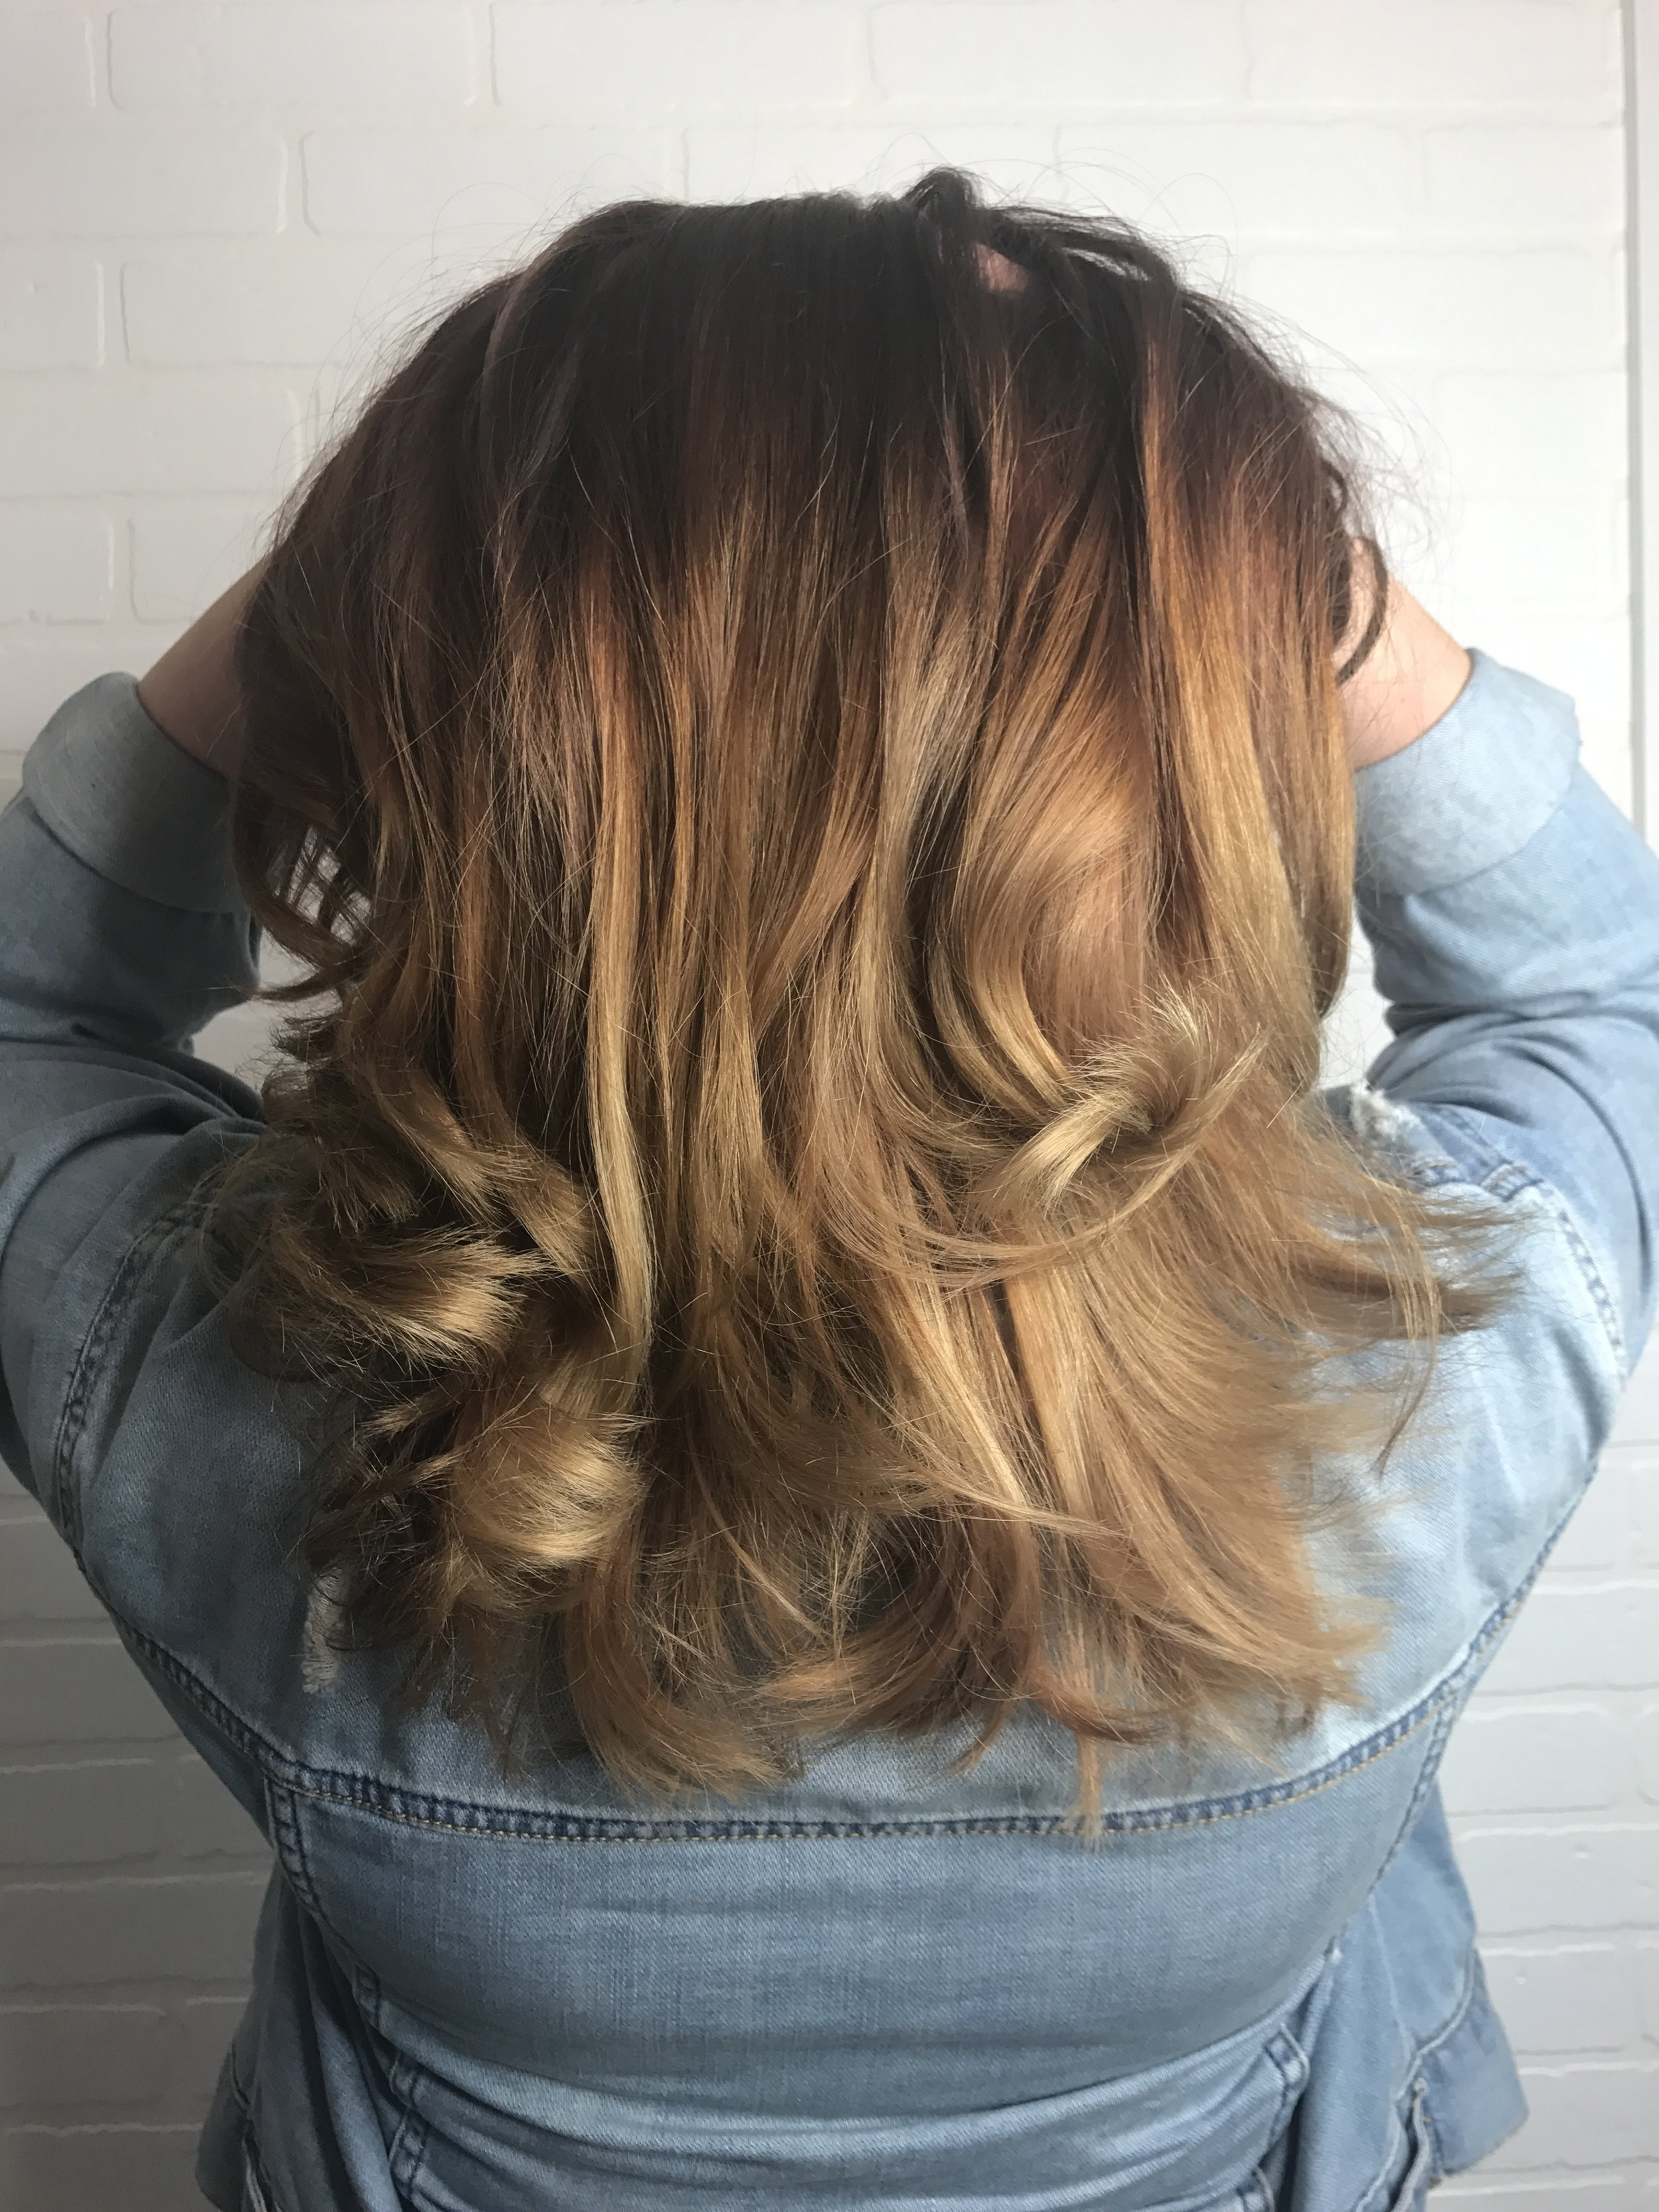 cut, color, & style by brittany